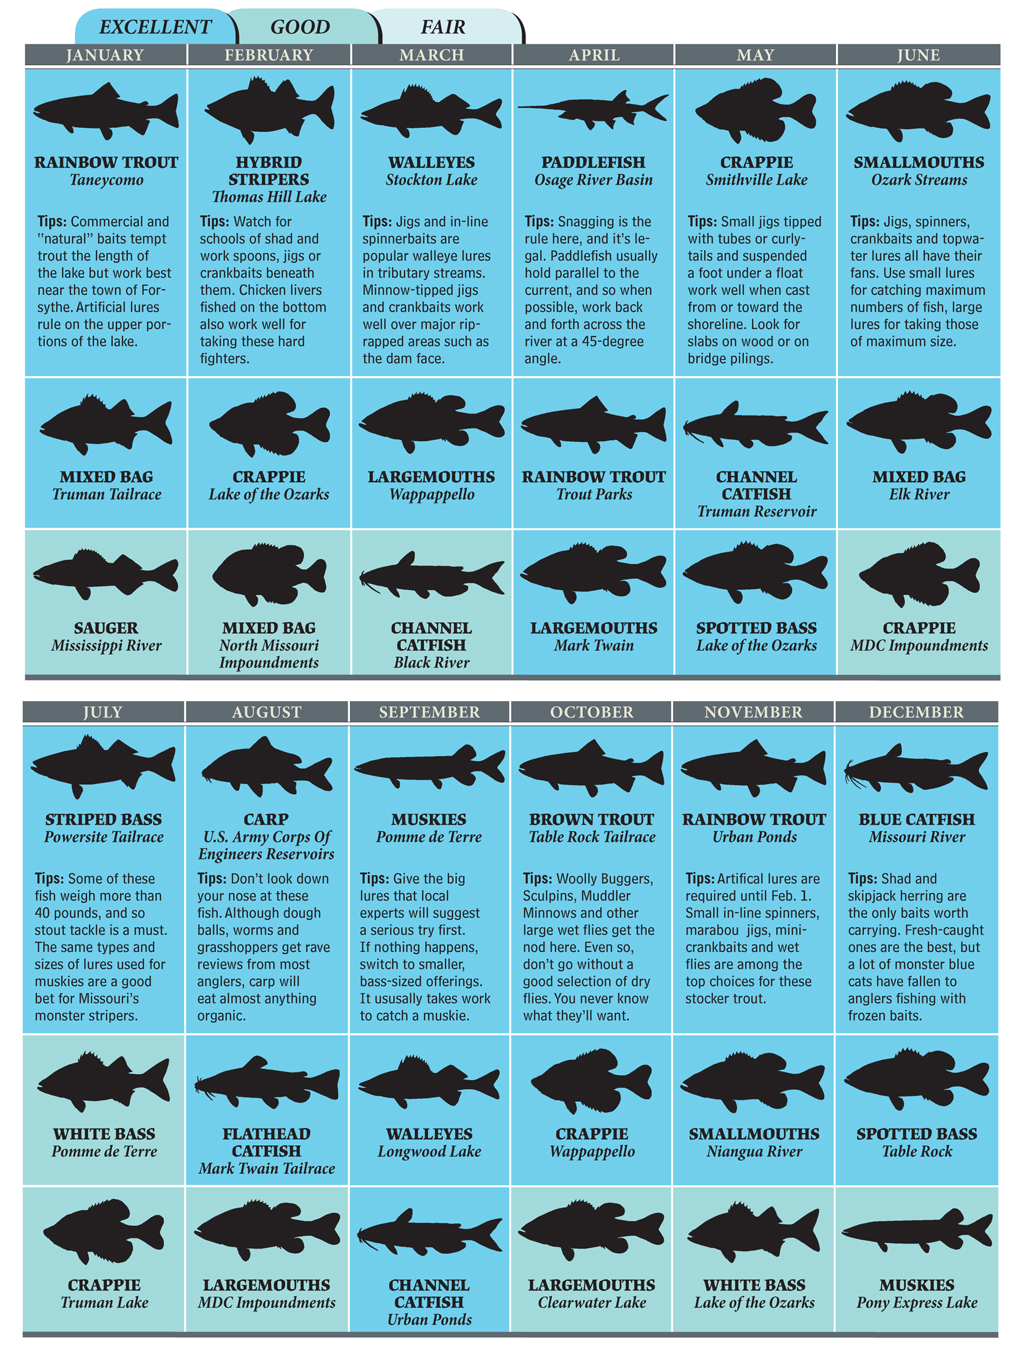 Top Spots for Missouri Fishing in 2012